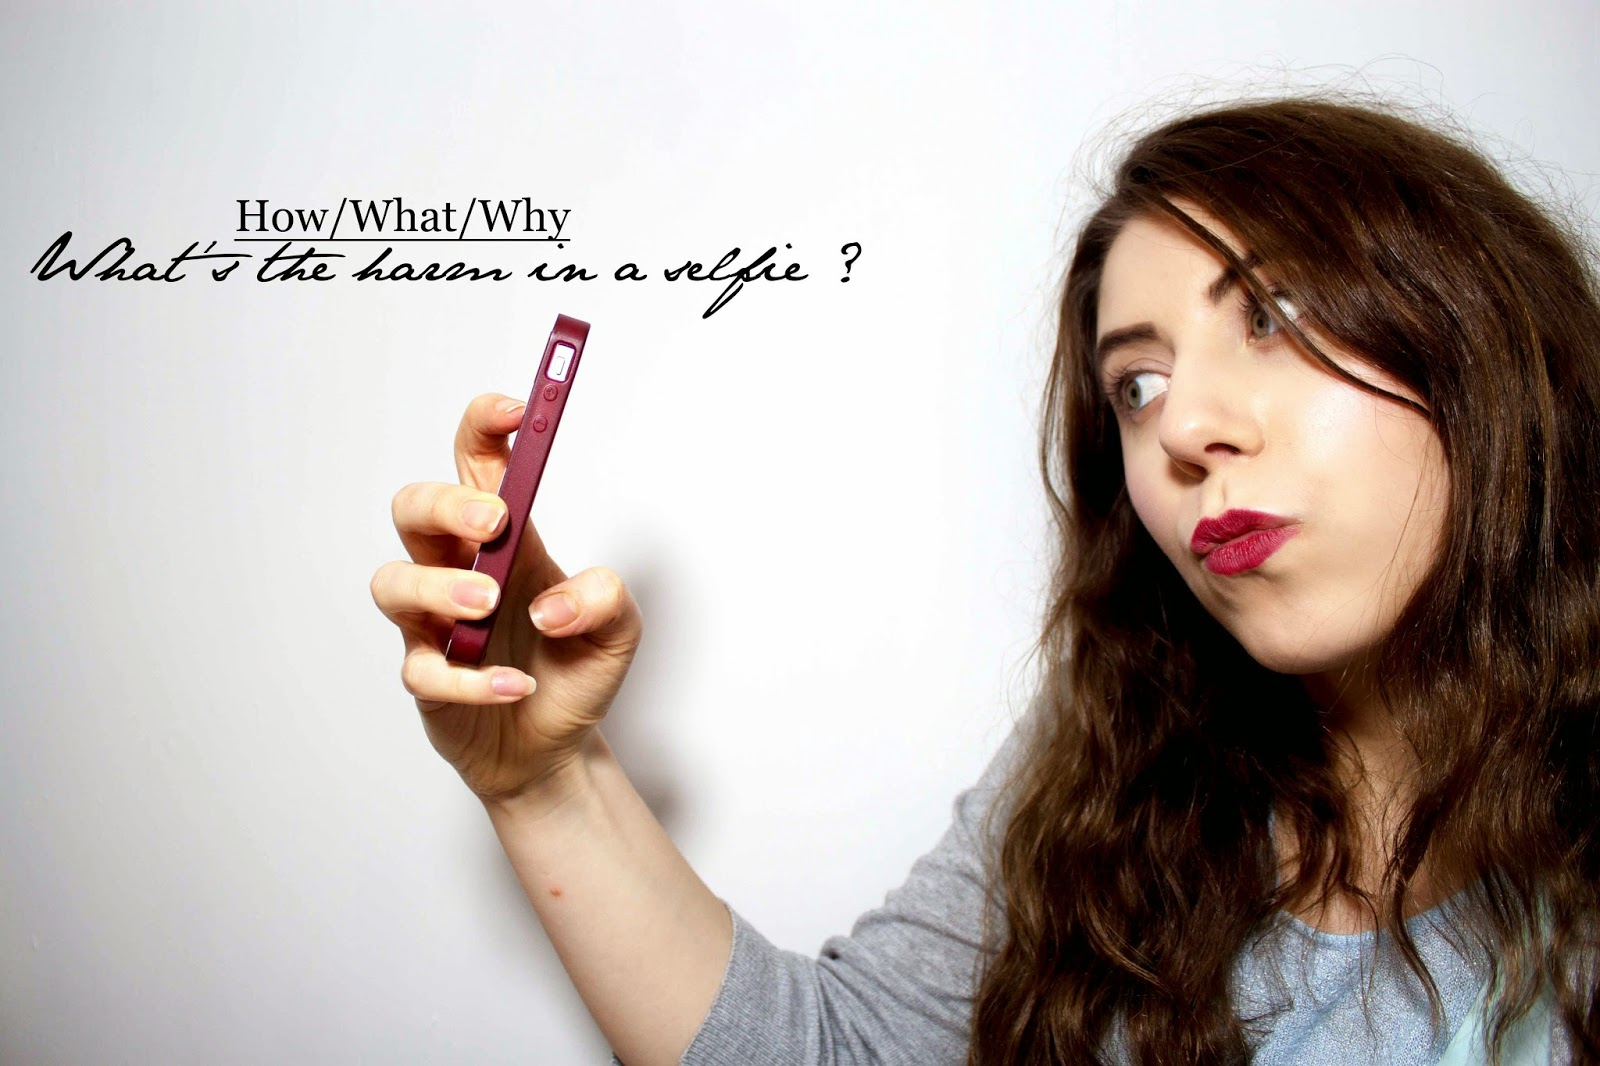 HOW/WHAT/WHY : WHAT'S THE HARM IN A SELFIE ?